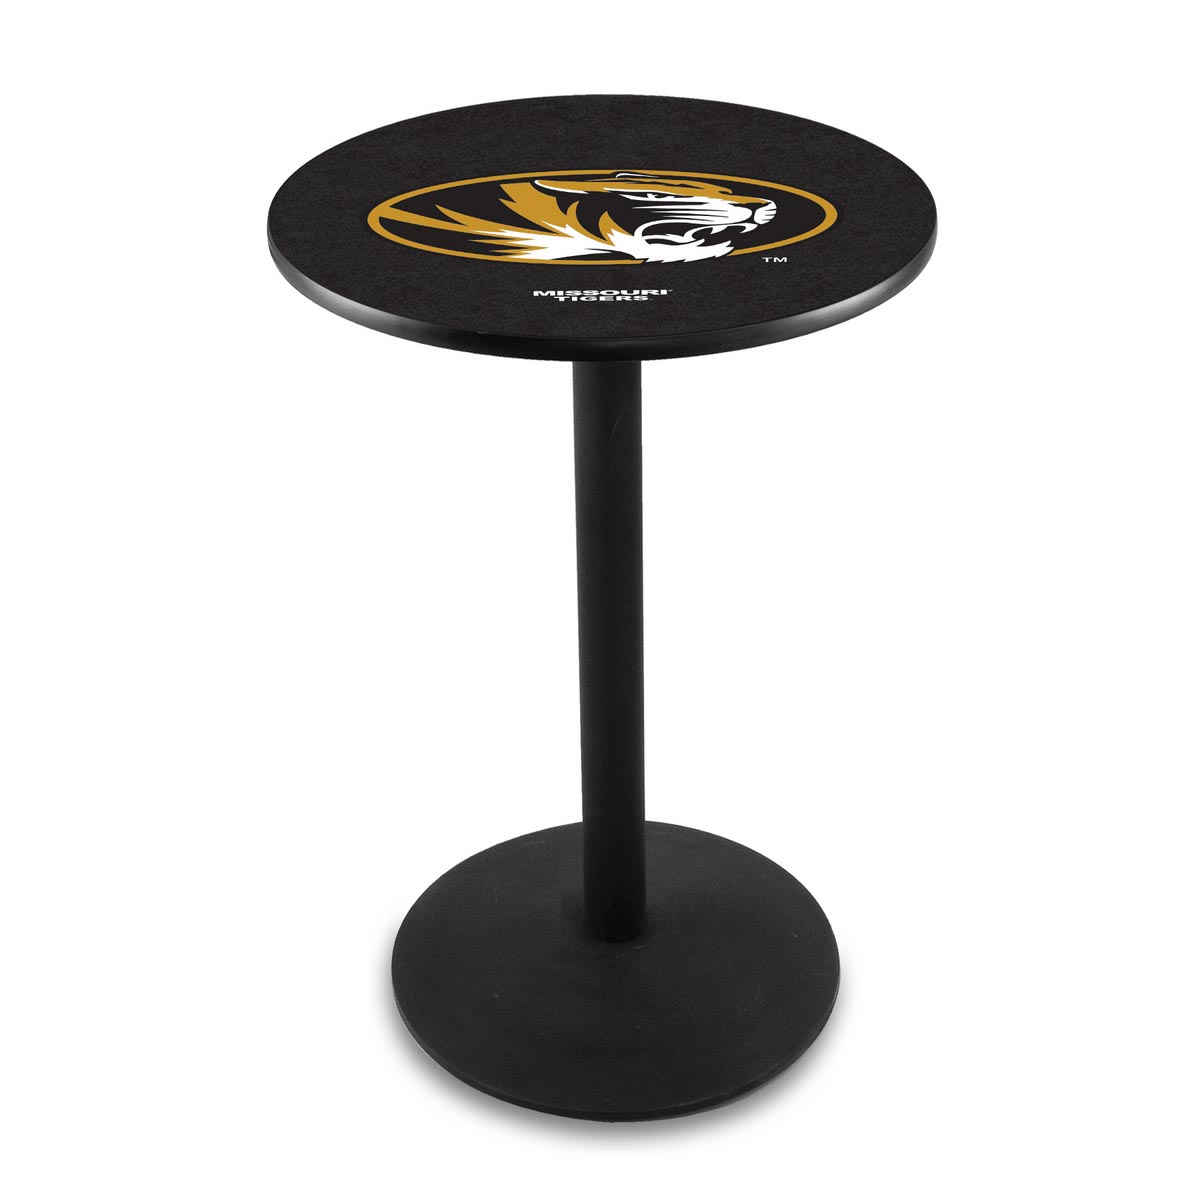 Precious University Missouri Logo Pub Bar Table Round Stand Product Photo